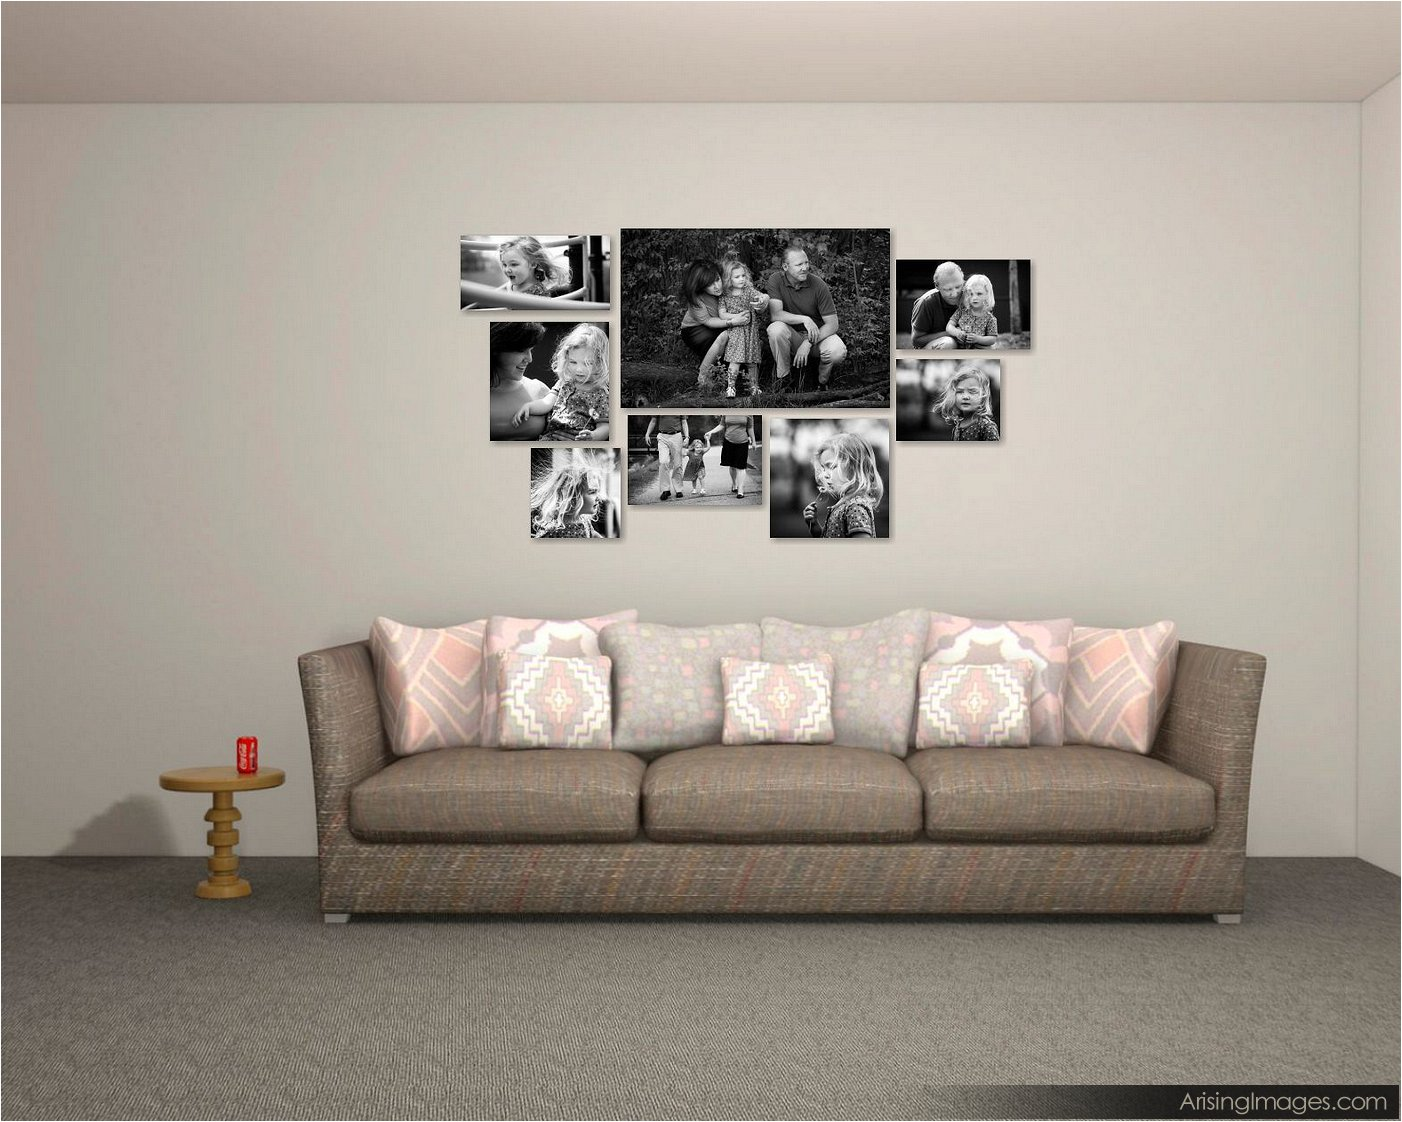 cool design ideas for pictures on your wall